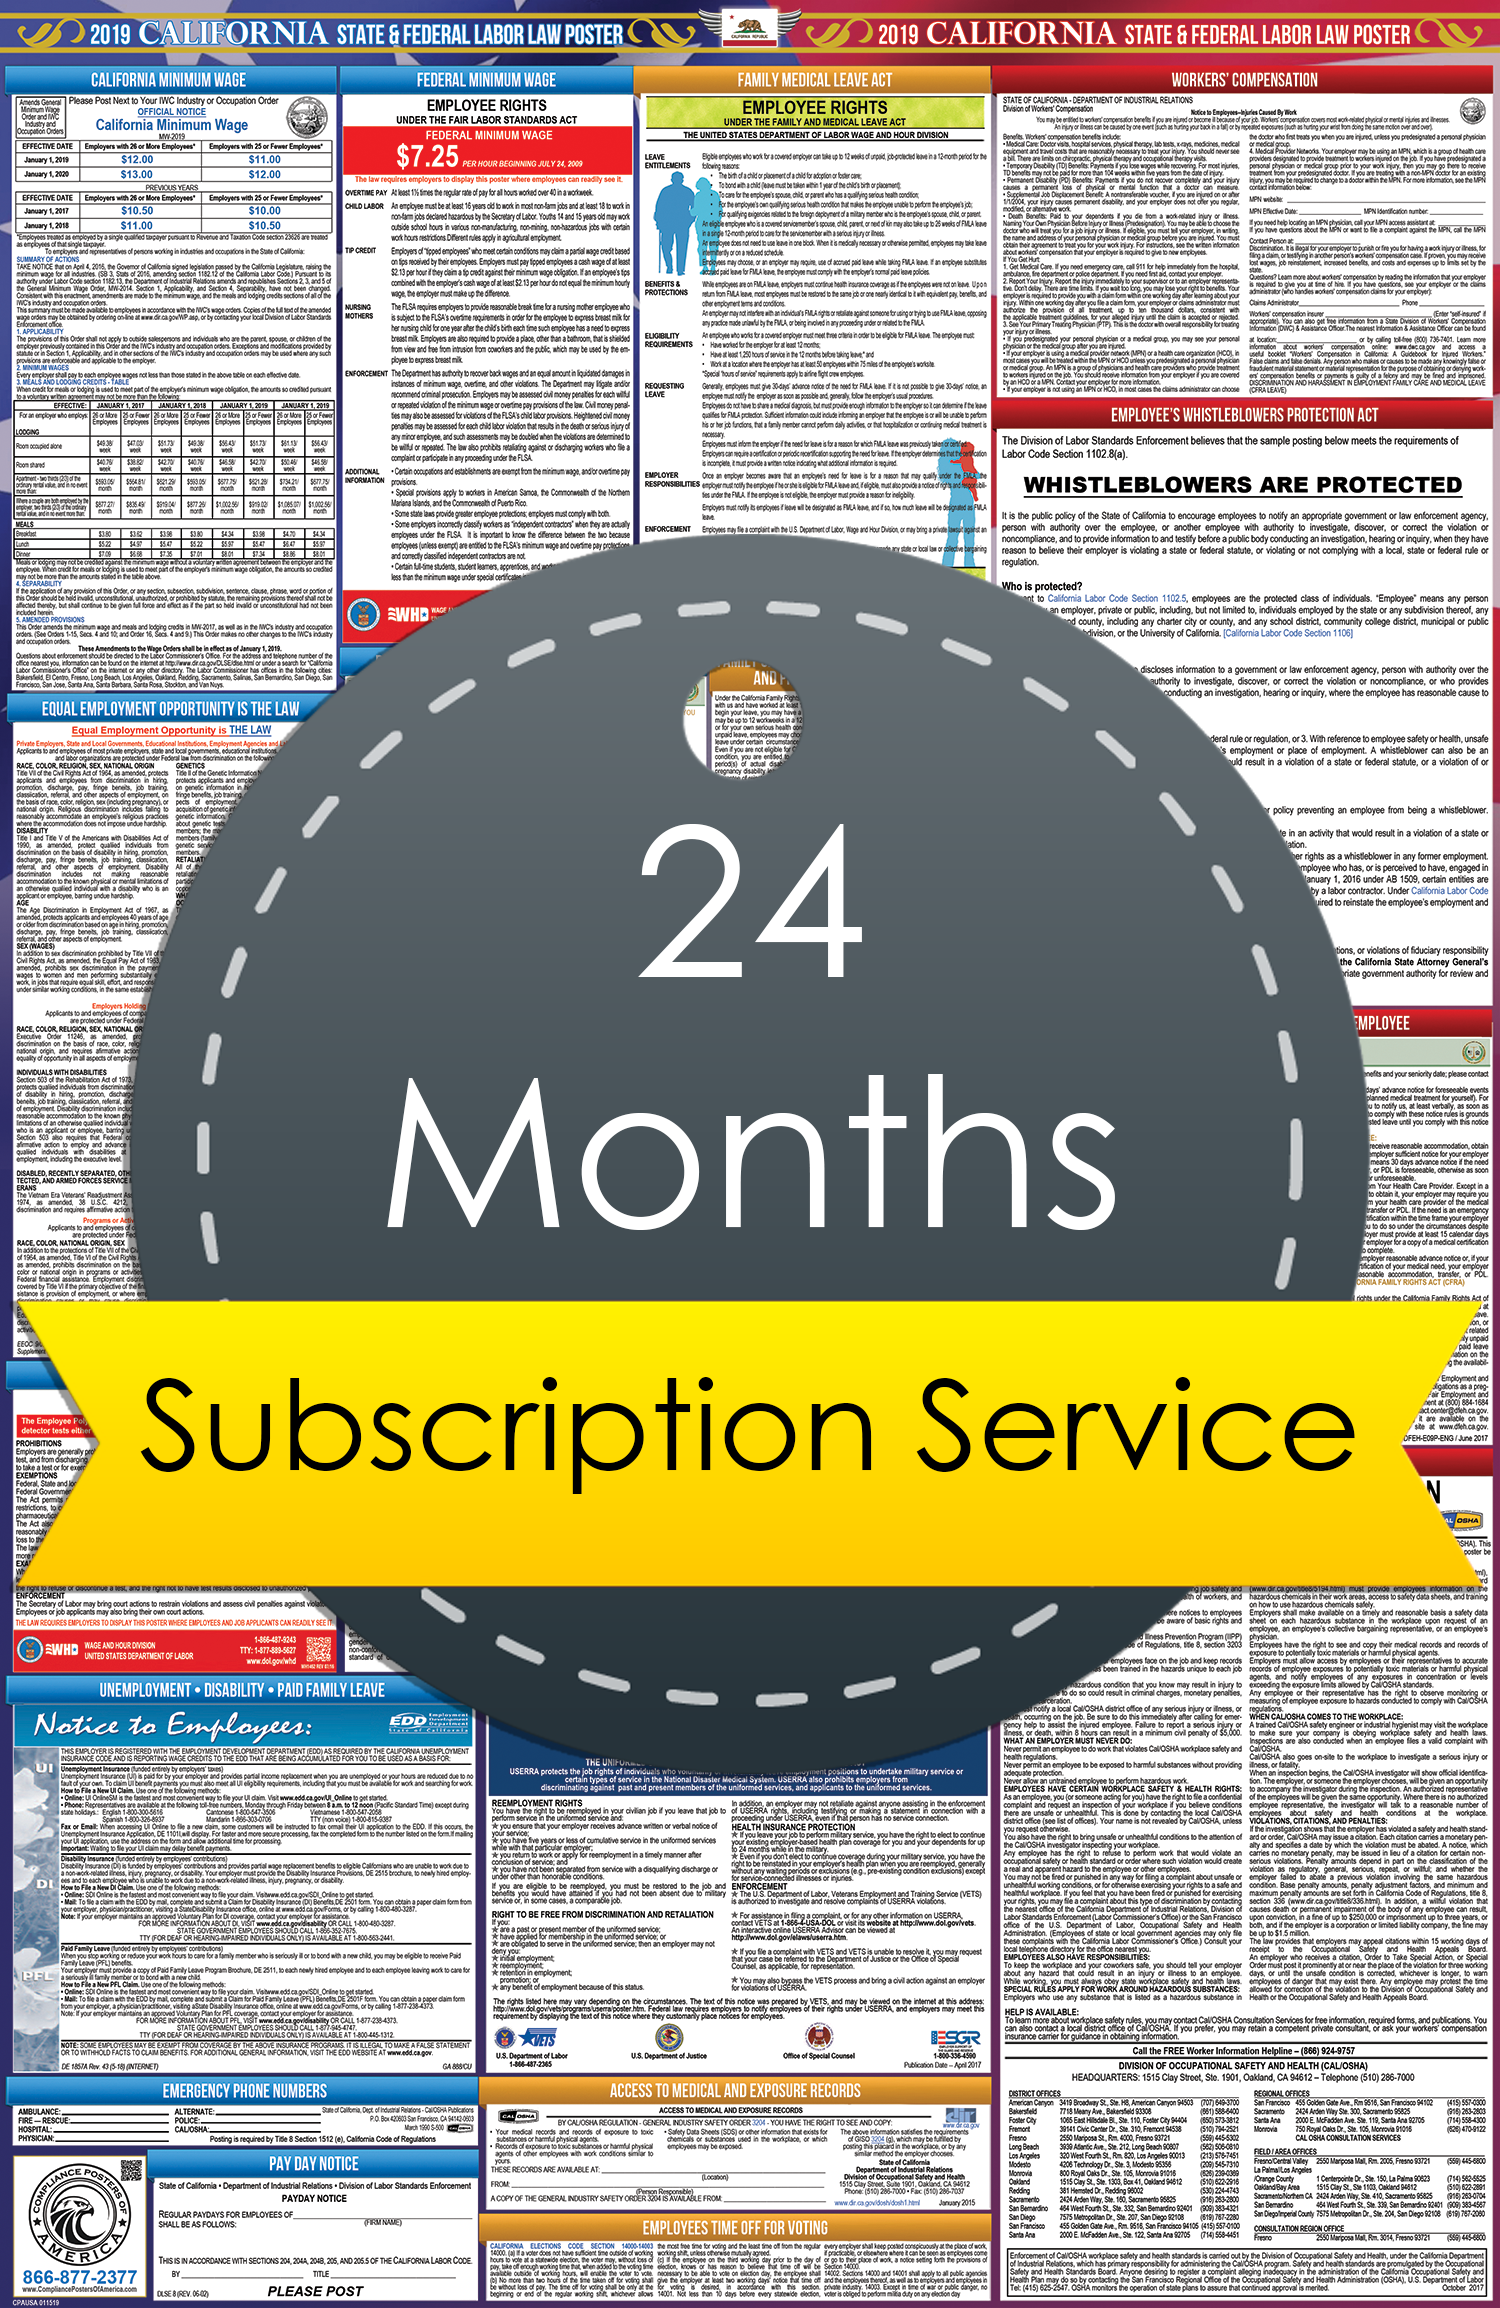 2 Year Subscription Service